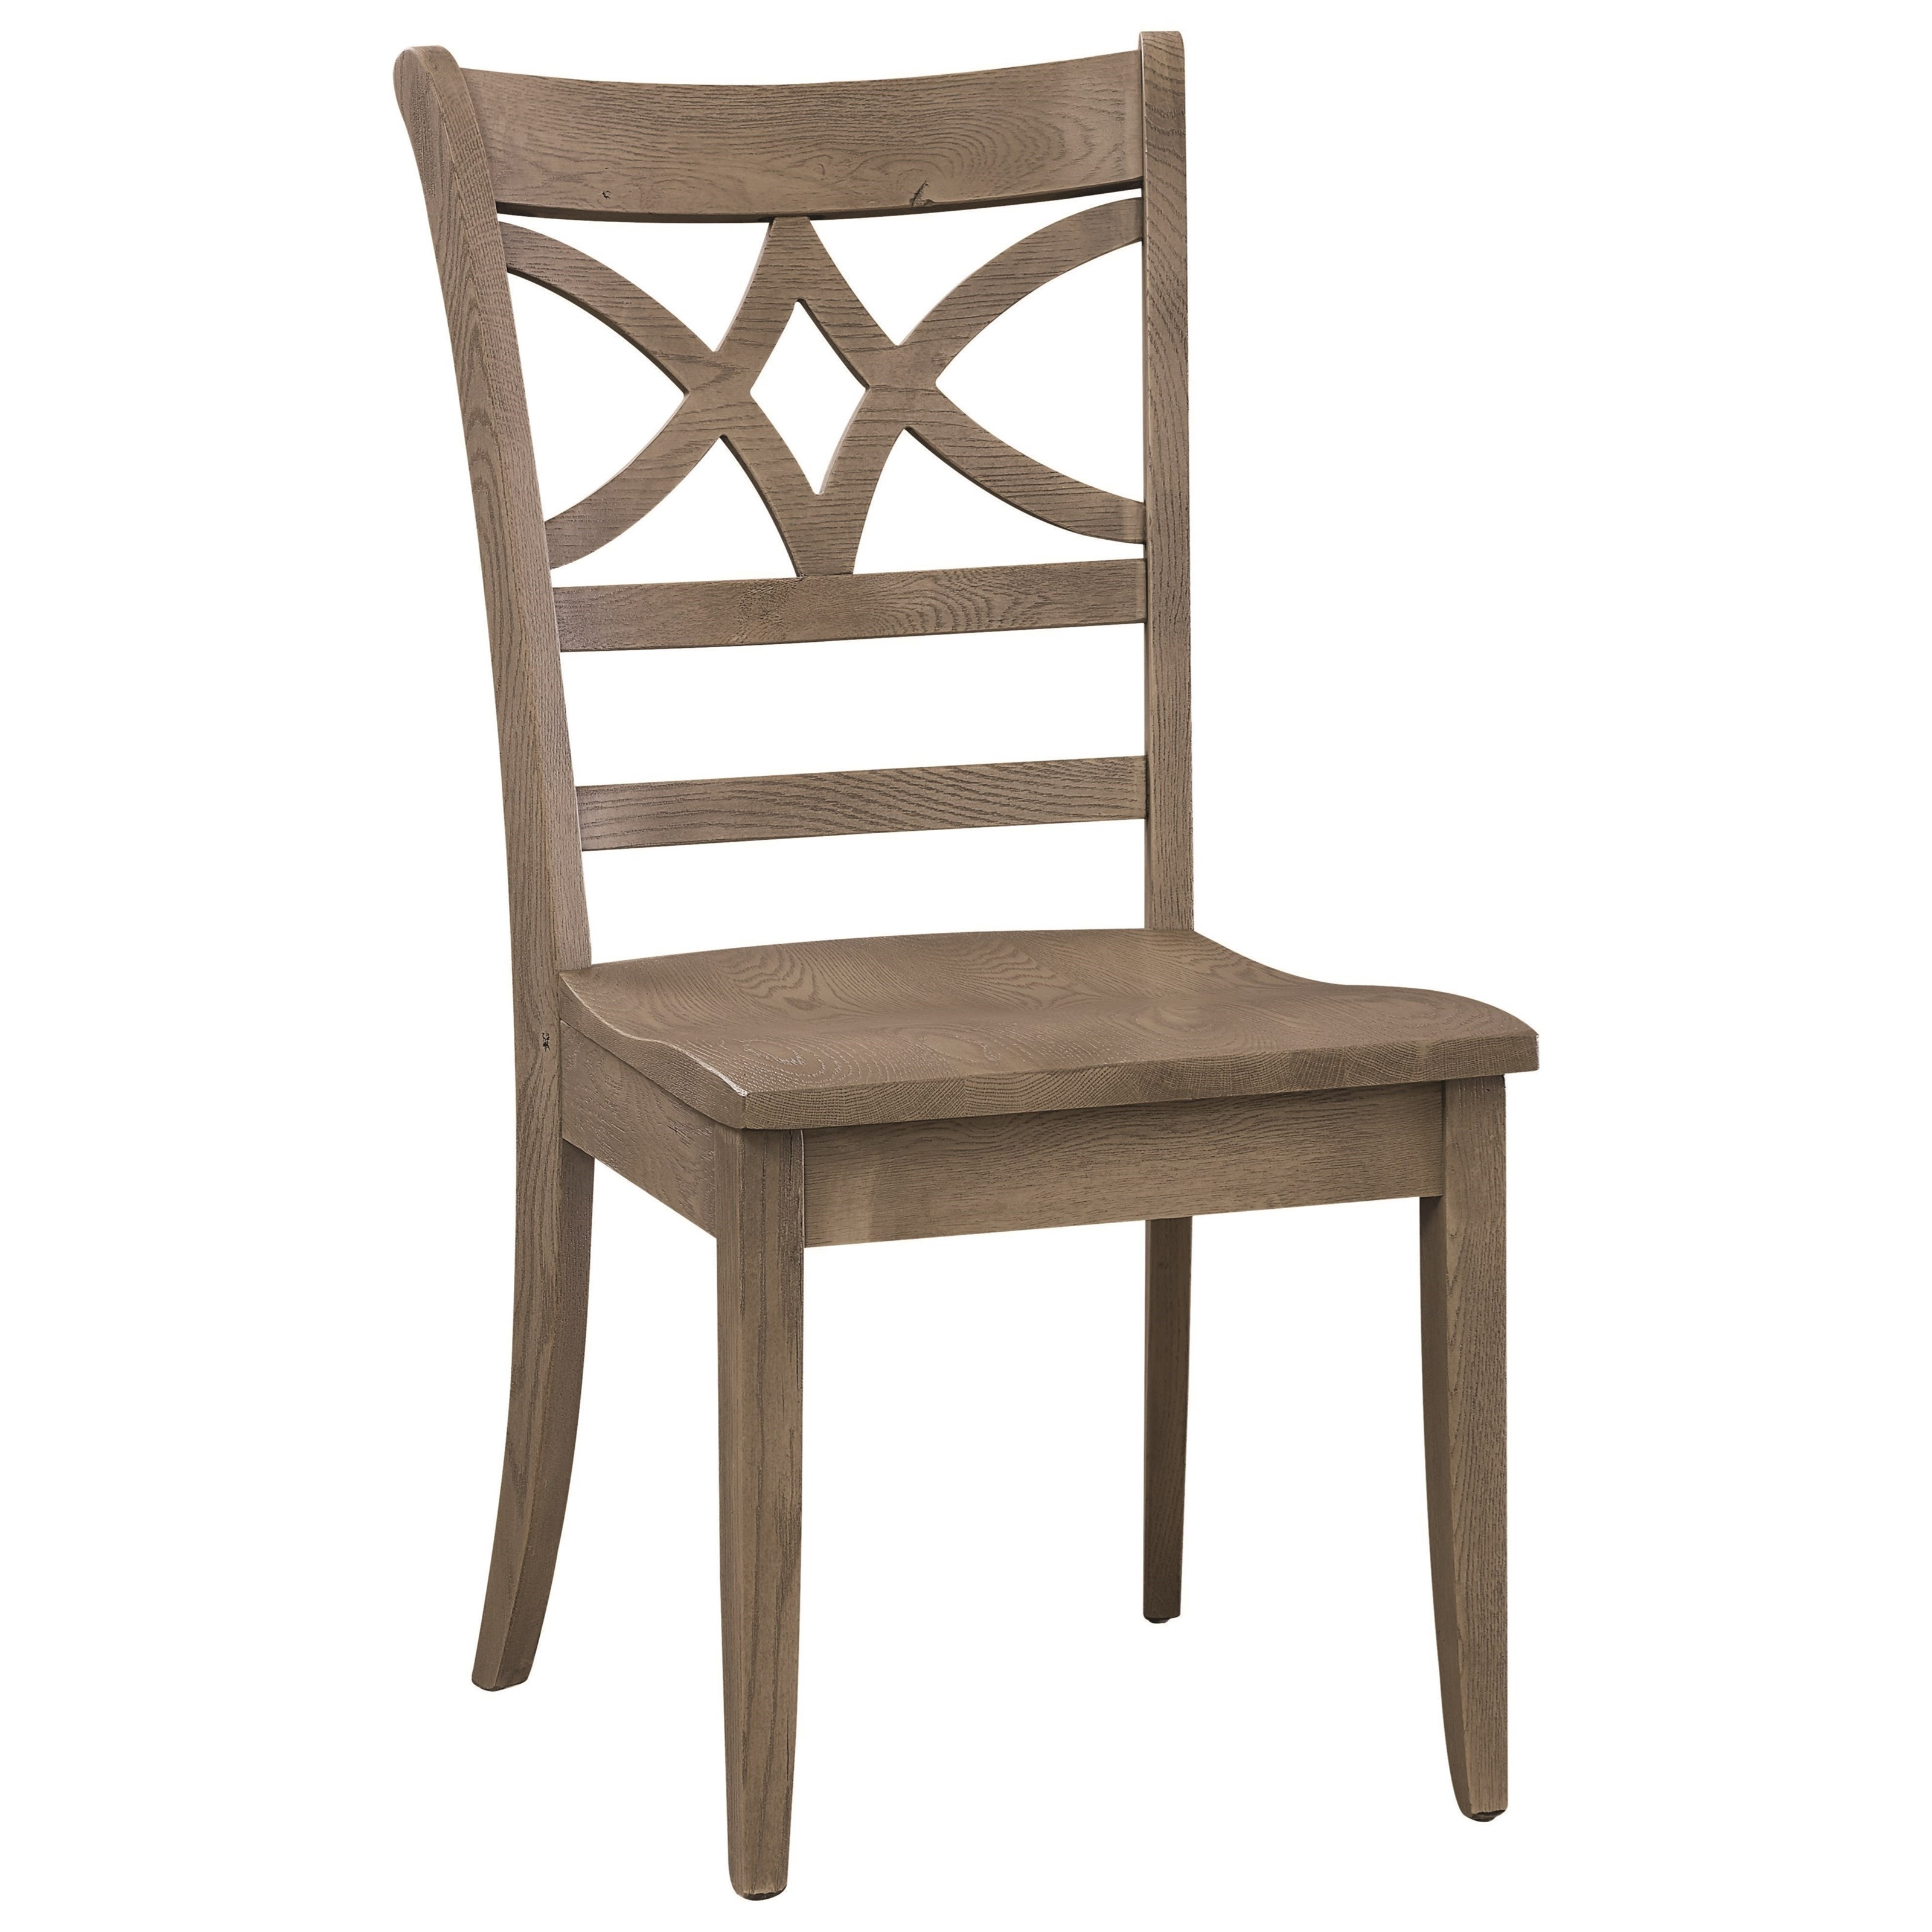 BenchMade Side Chair by Bassett at Virginia Furniture Market